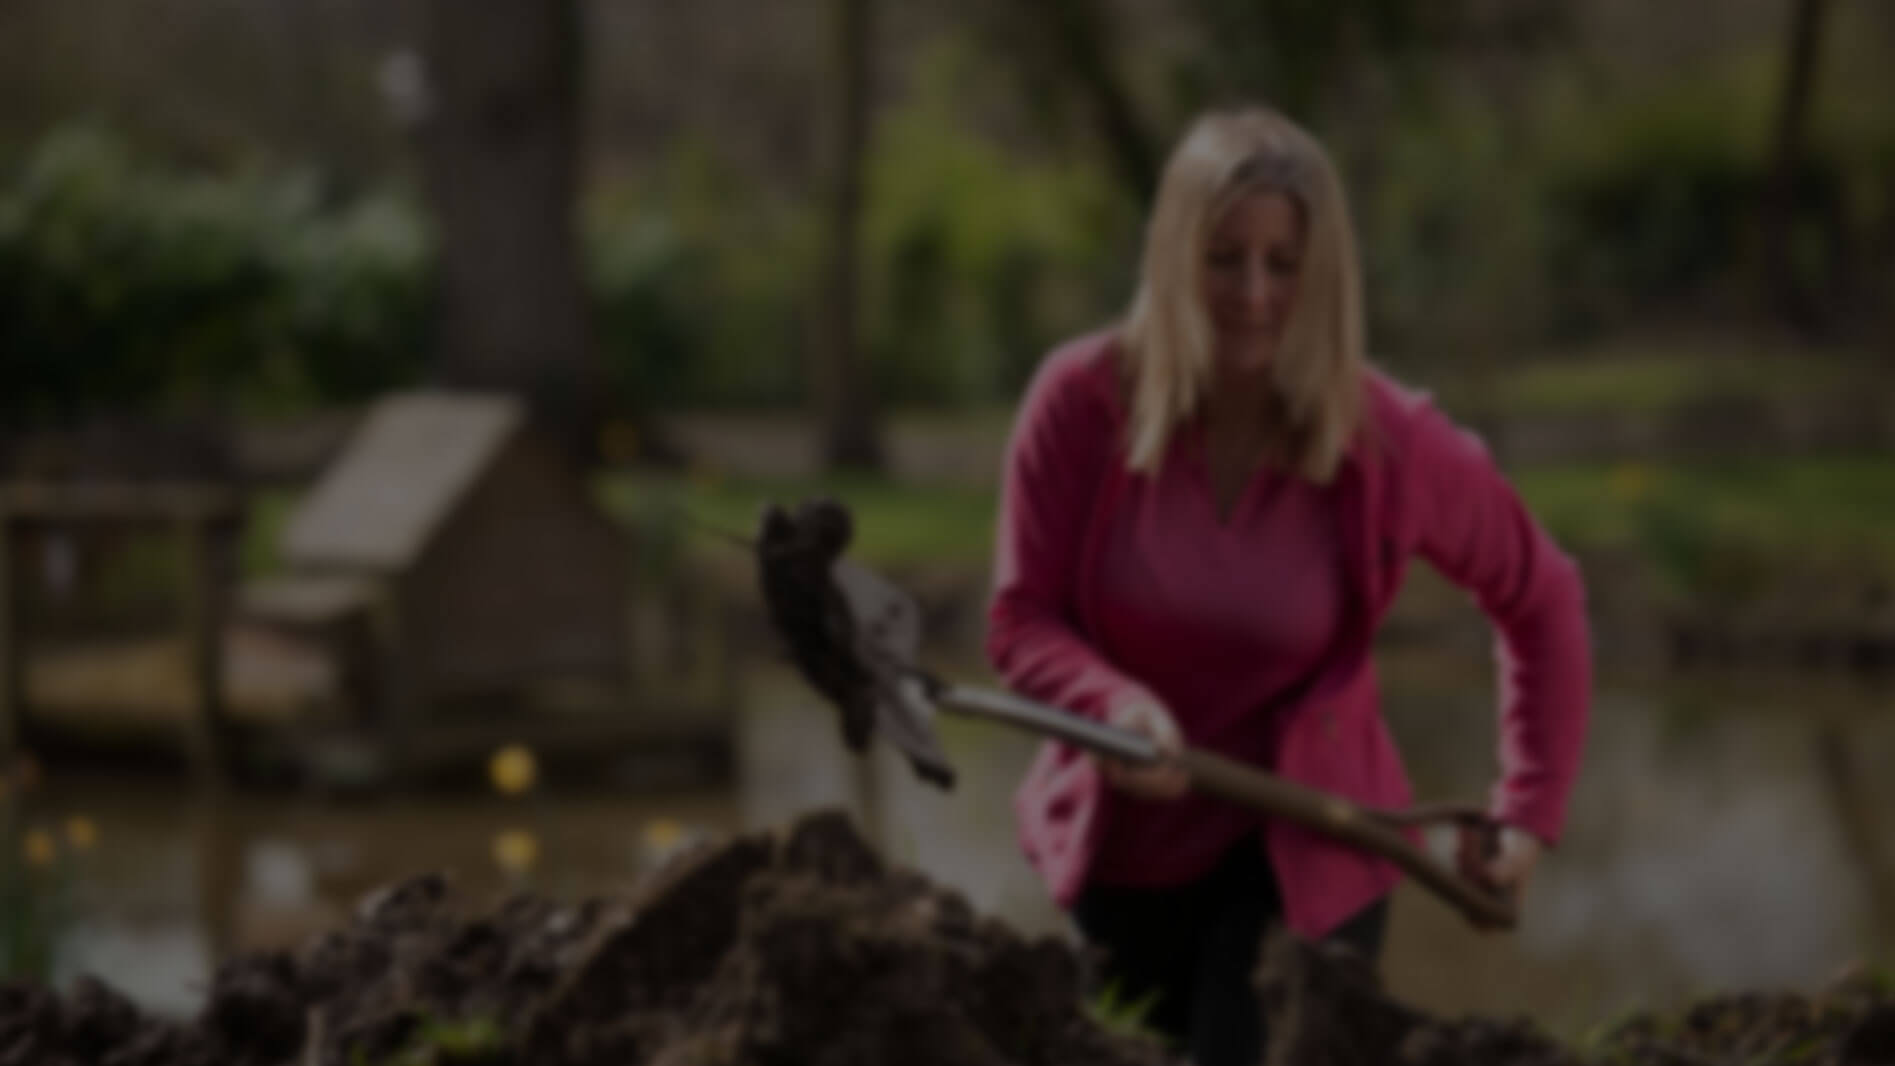 Gaynor, The Gardening Girl